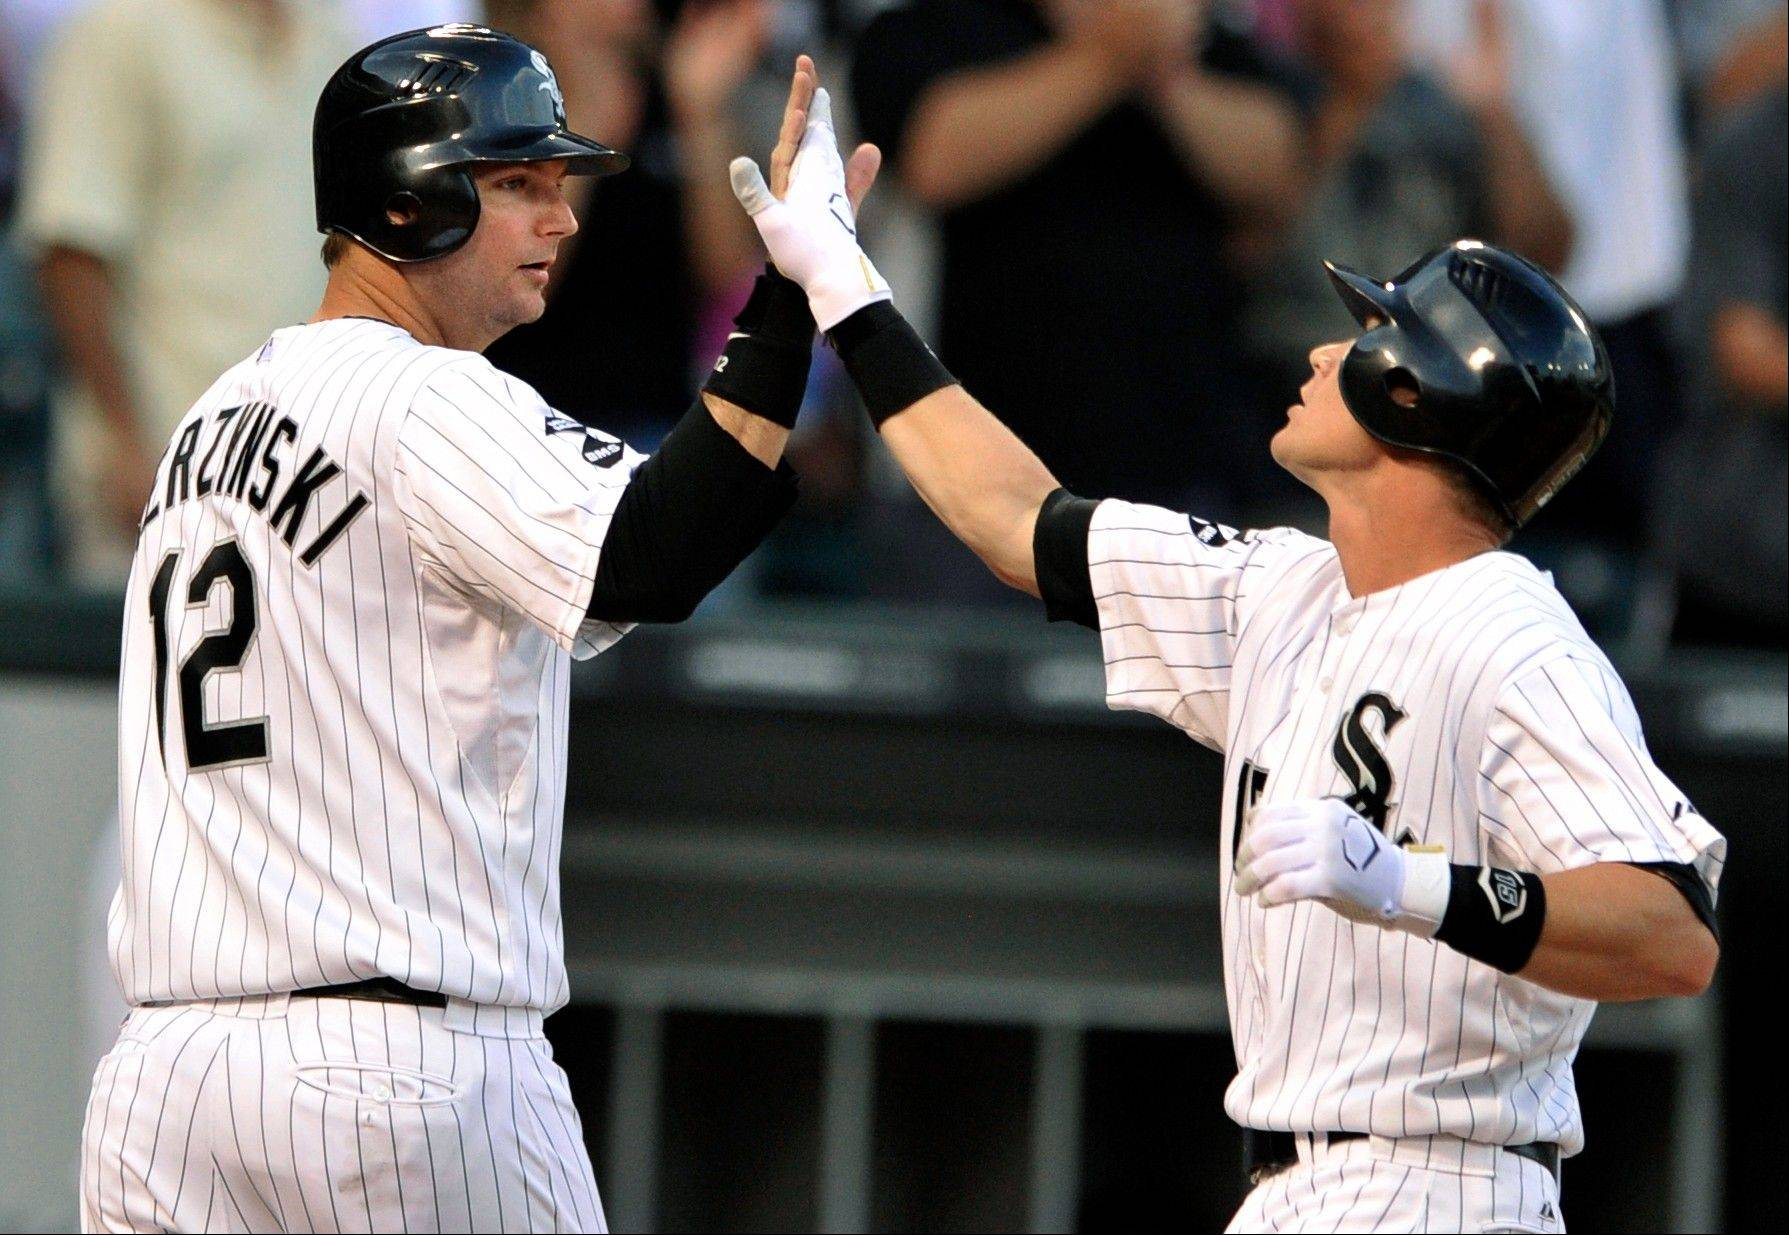 White Sox infielder Gordon Beckham, right, celebrates with catcher A.J. Pierzynski after hitting a two-run home run in the second inning Monday.